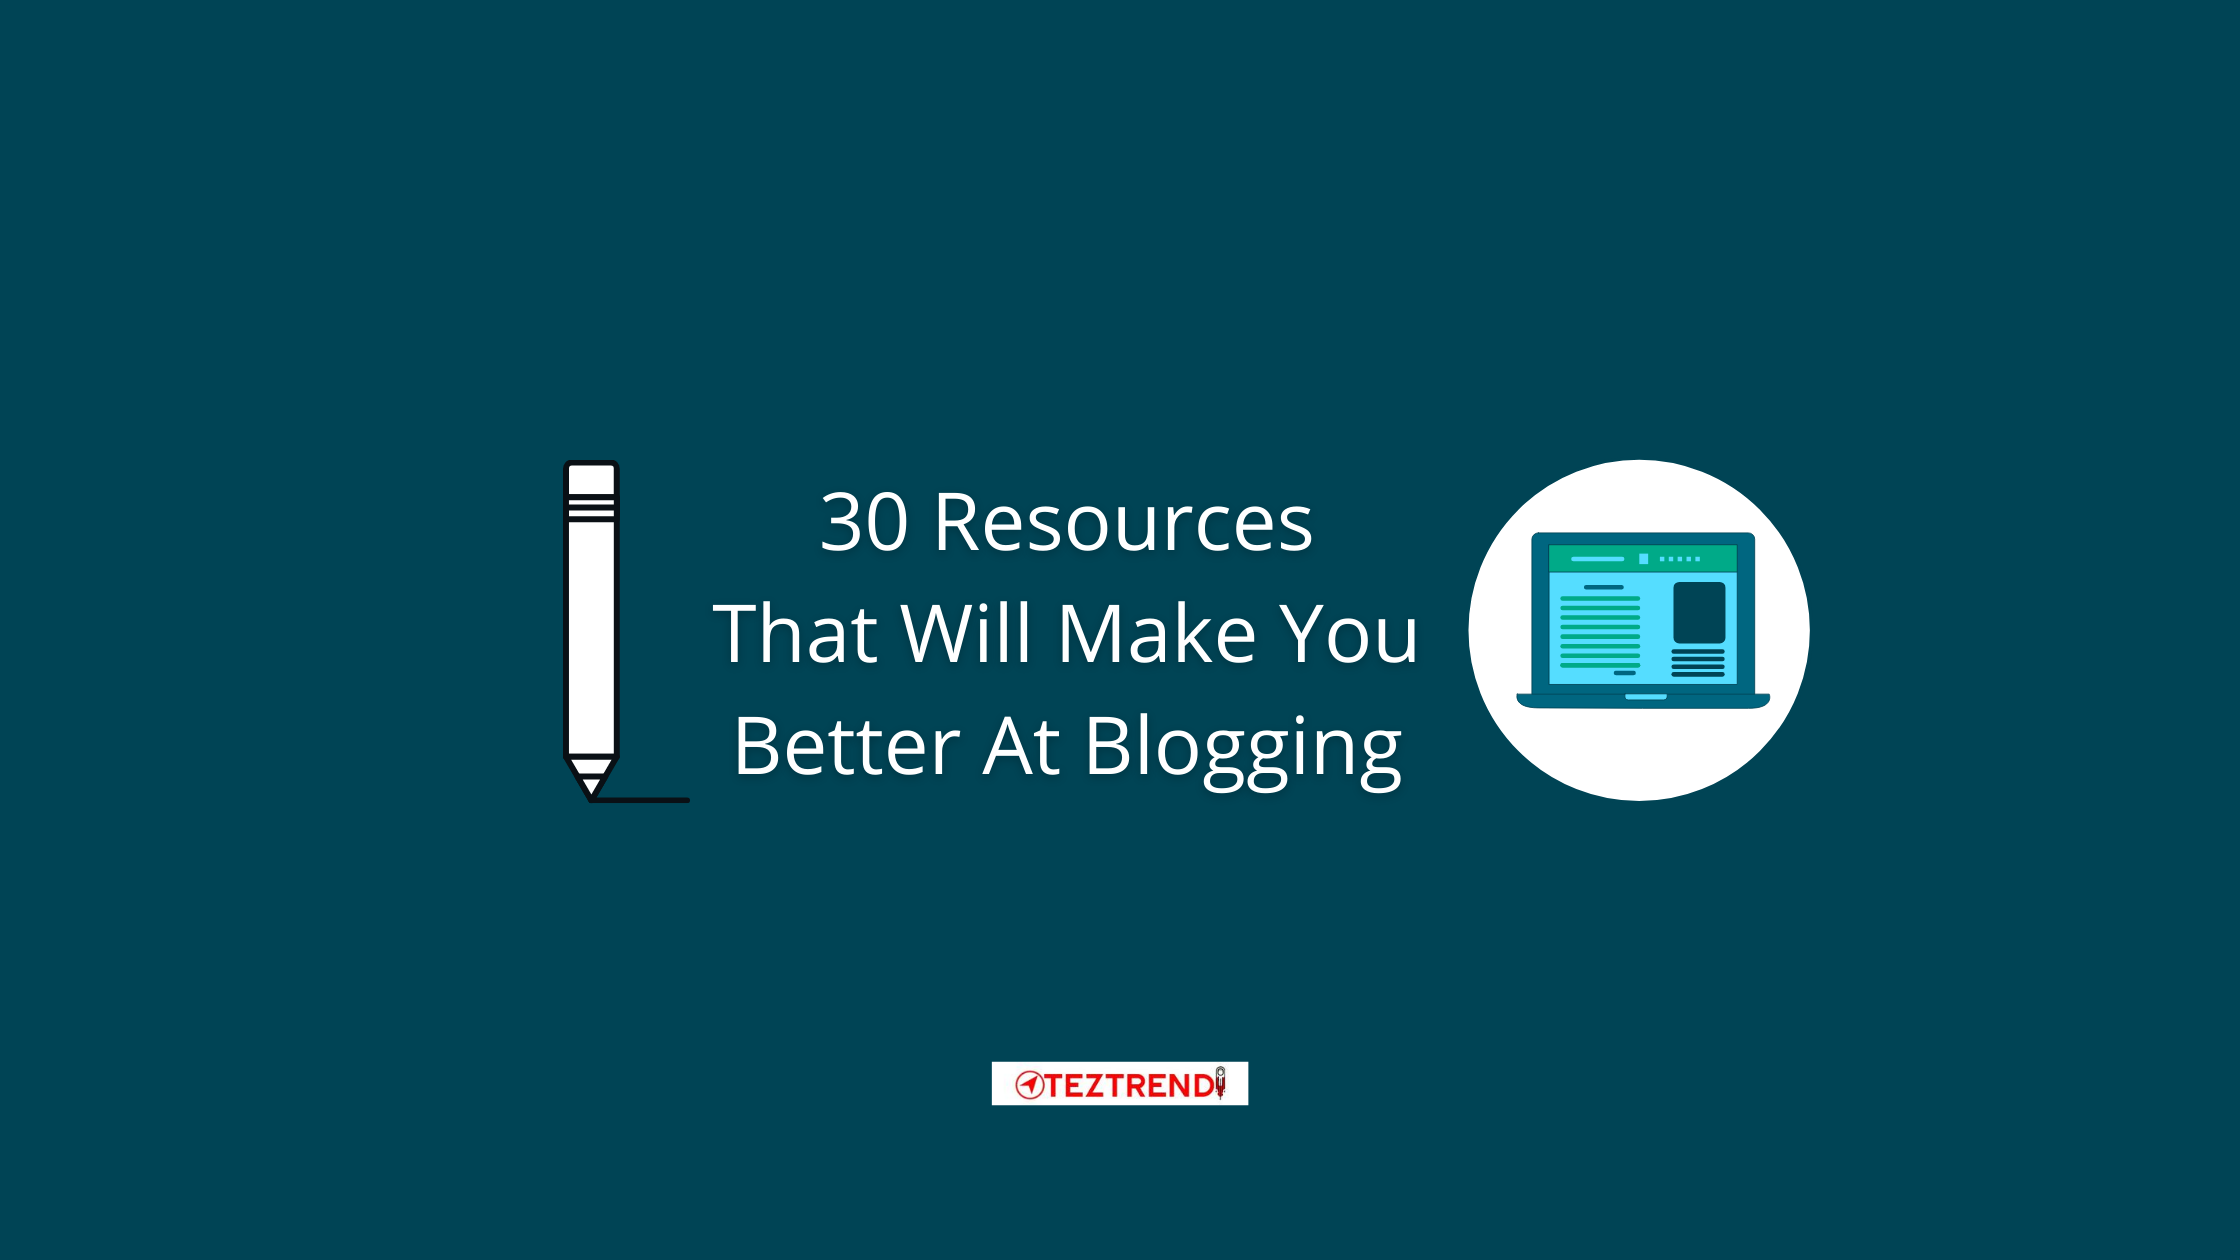 31 Resources That Will Make You Better at Blogging